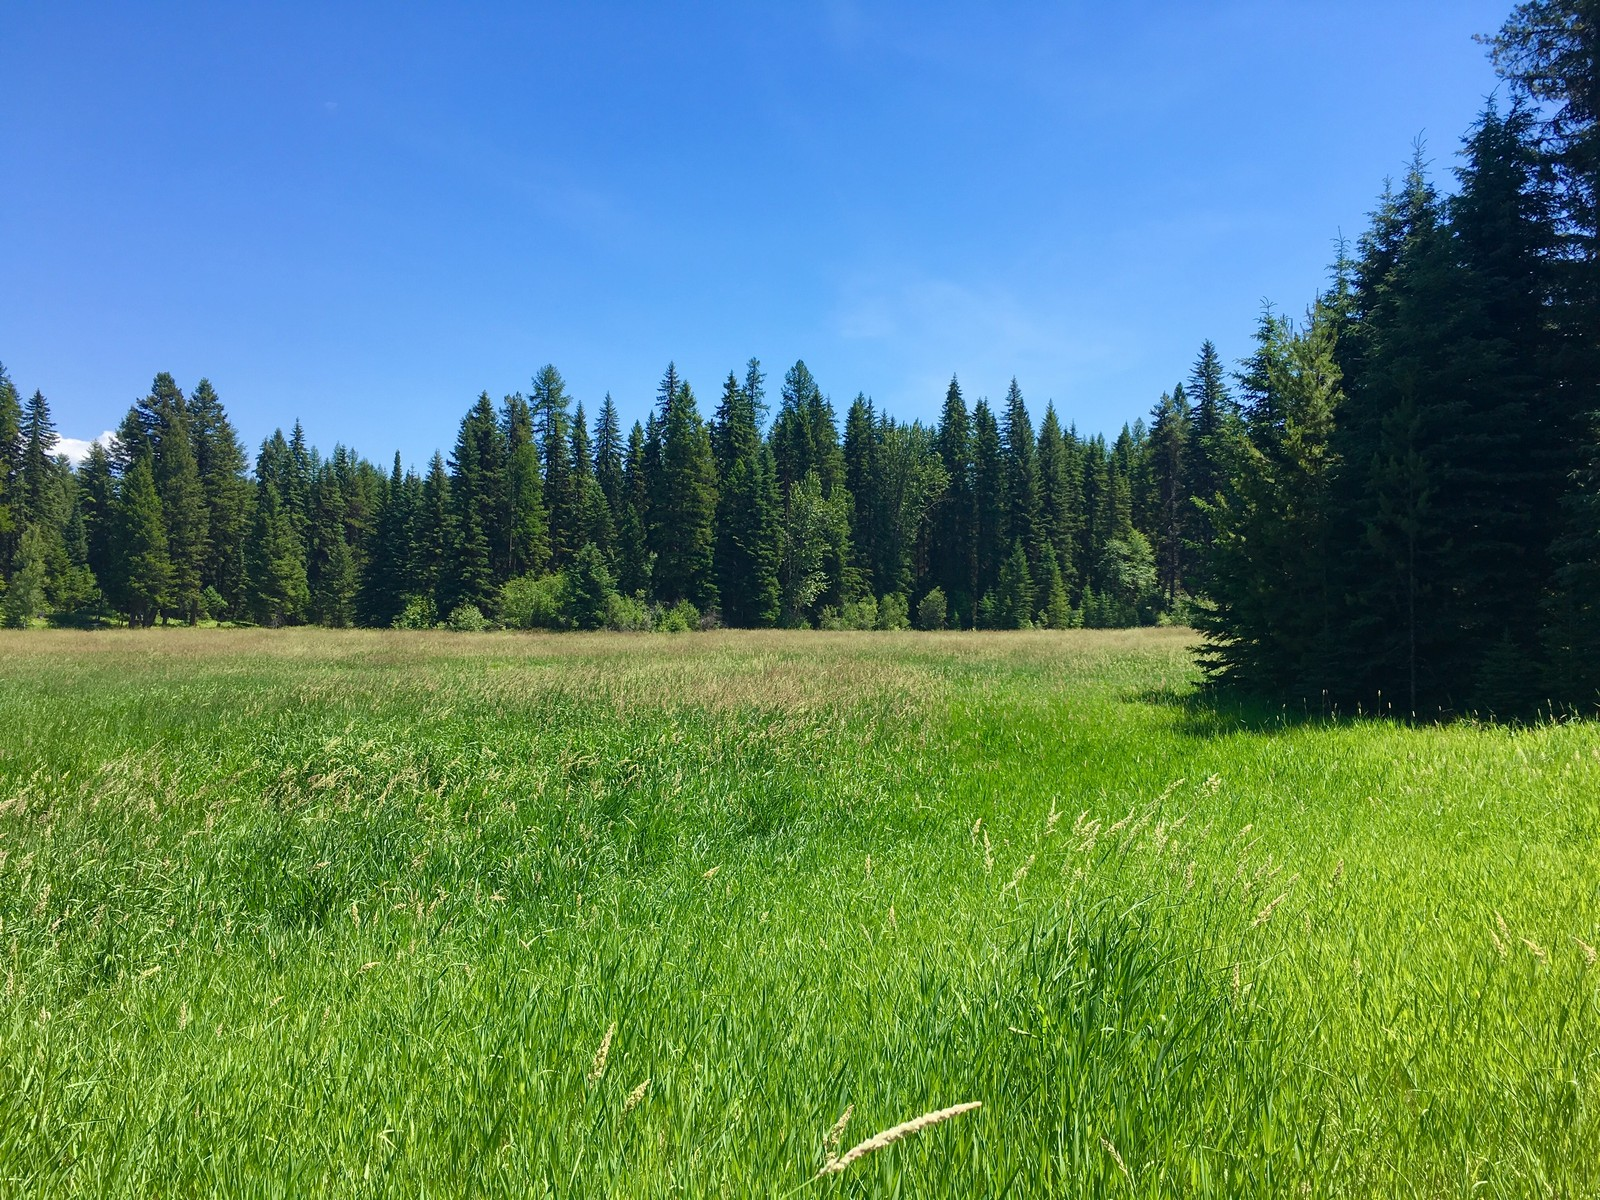 Additional photo for property listing at 146 Lupfer Meadows Pl , Whitefish, MT 59937 146  Lupfer Meadows Pl Whitefish, Montana 59937 United States